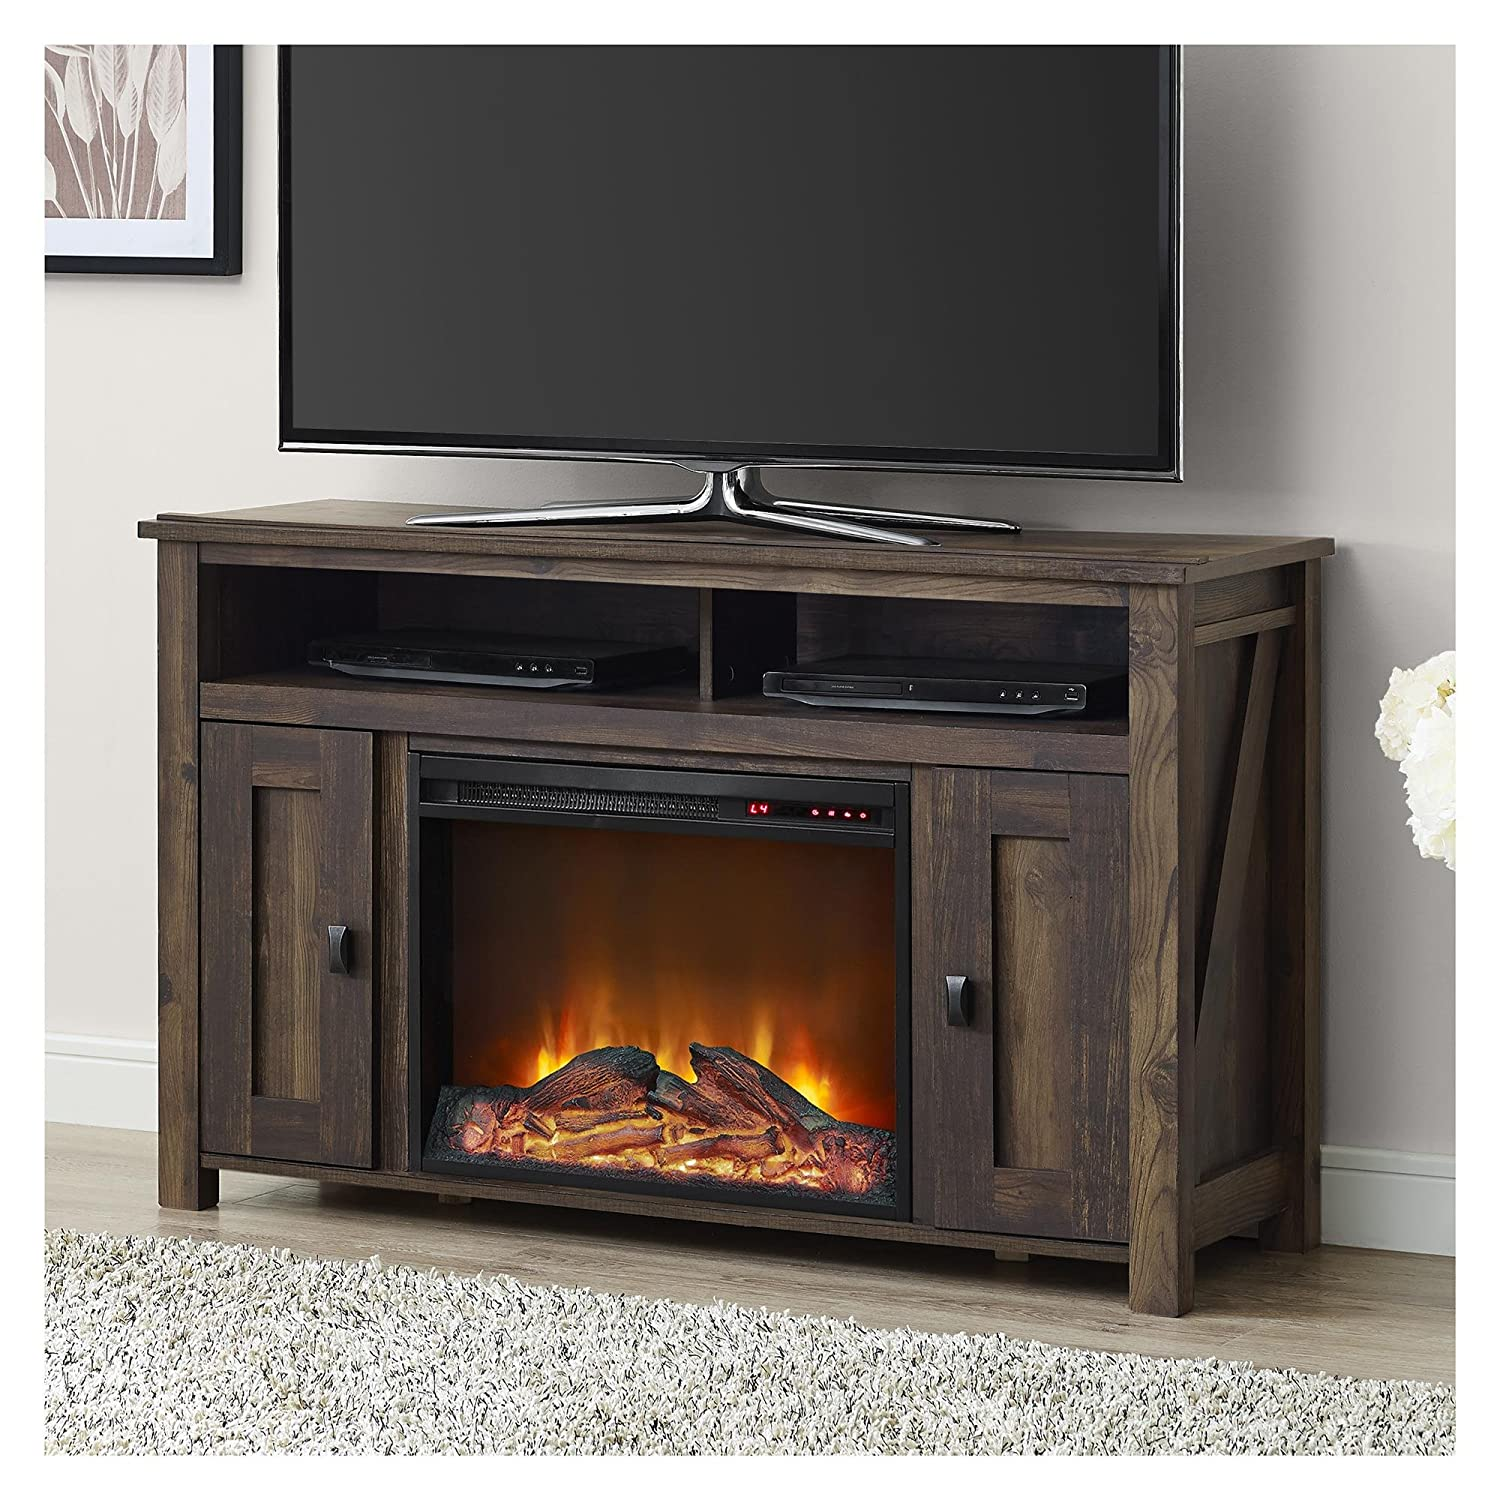 fireplace for with any space home tv electric adorable storag fake flat stand depot walmart heater wayfair stands entertaining cabinet costco screen furniture